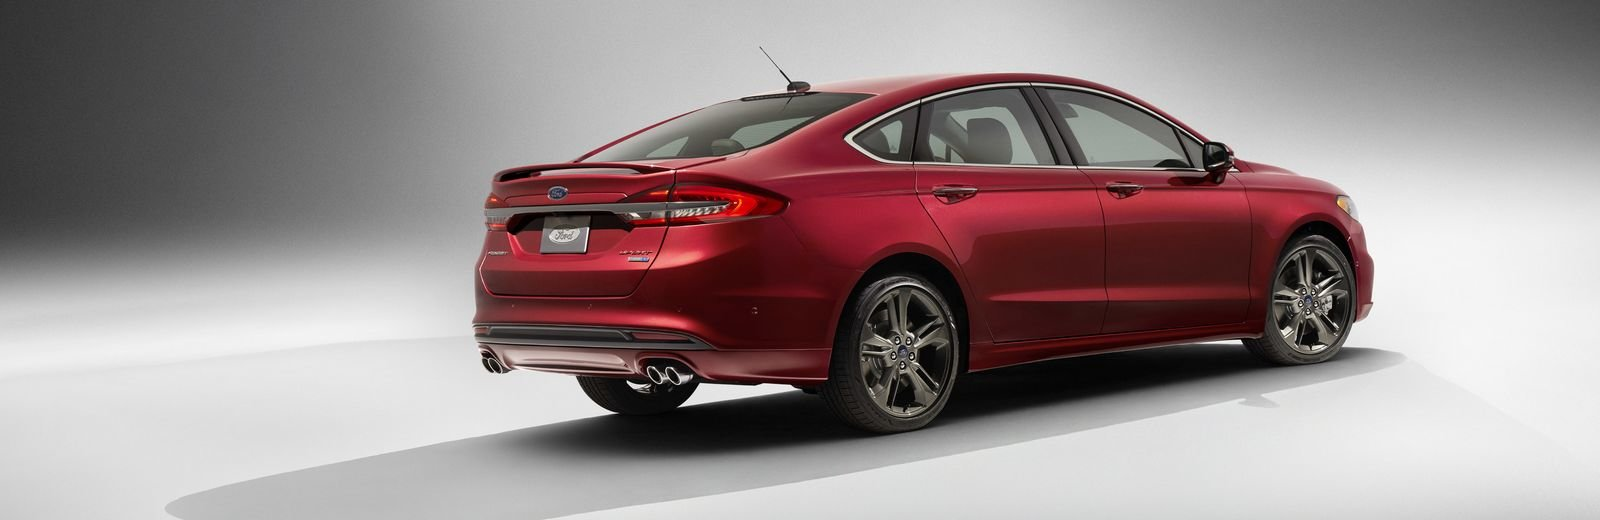 Ford Fusion V6 Sport.